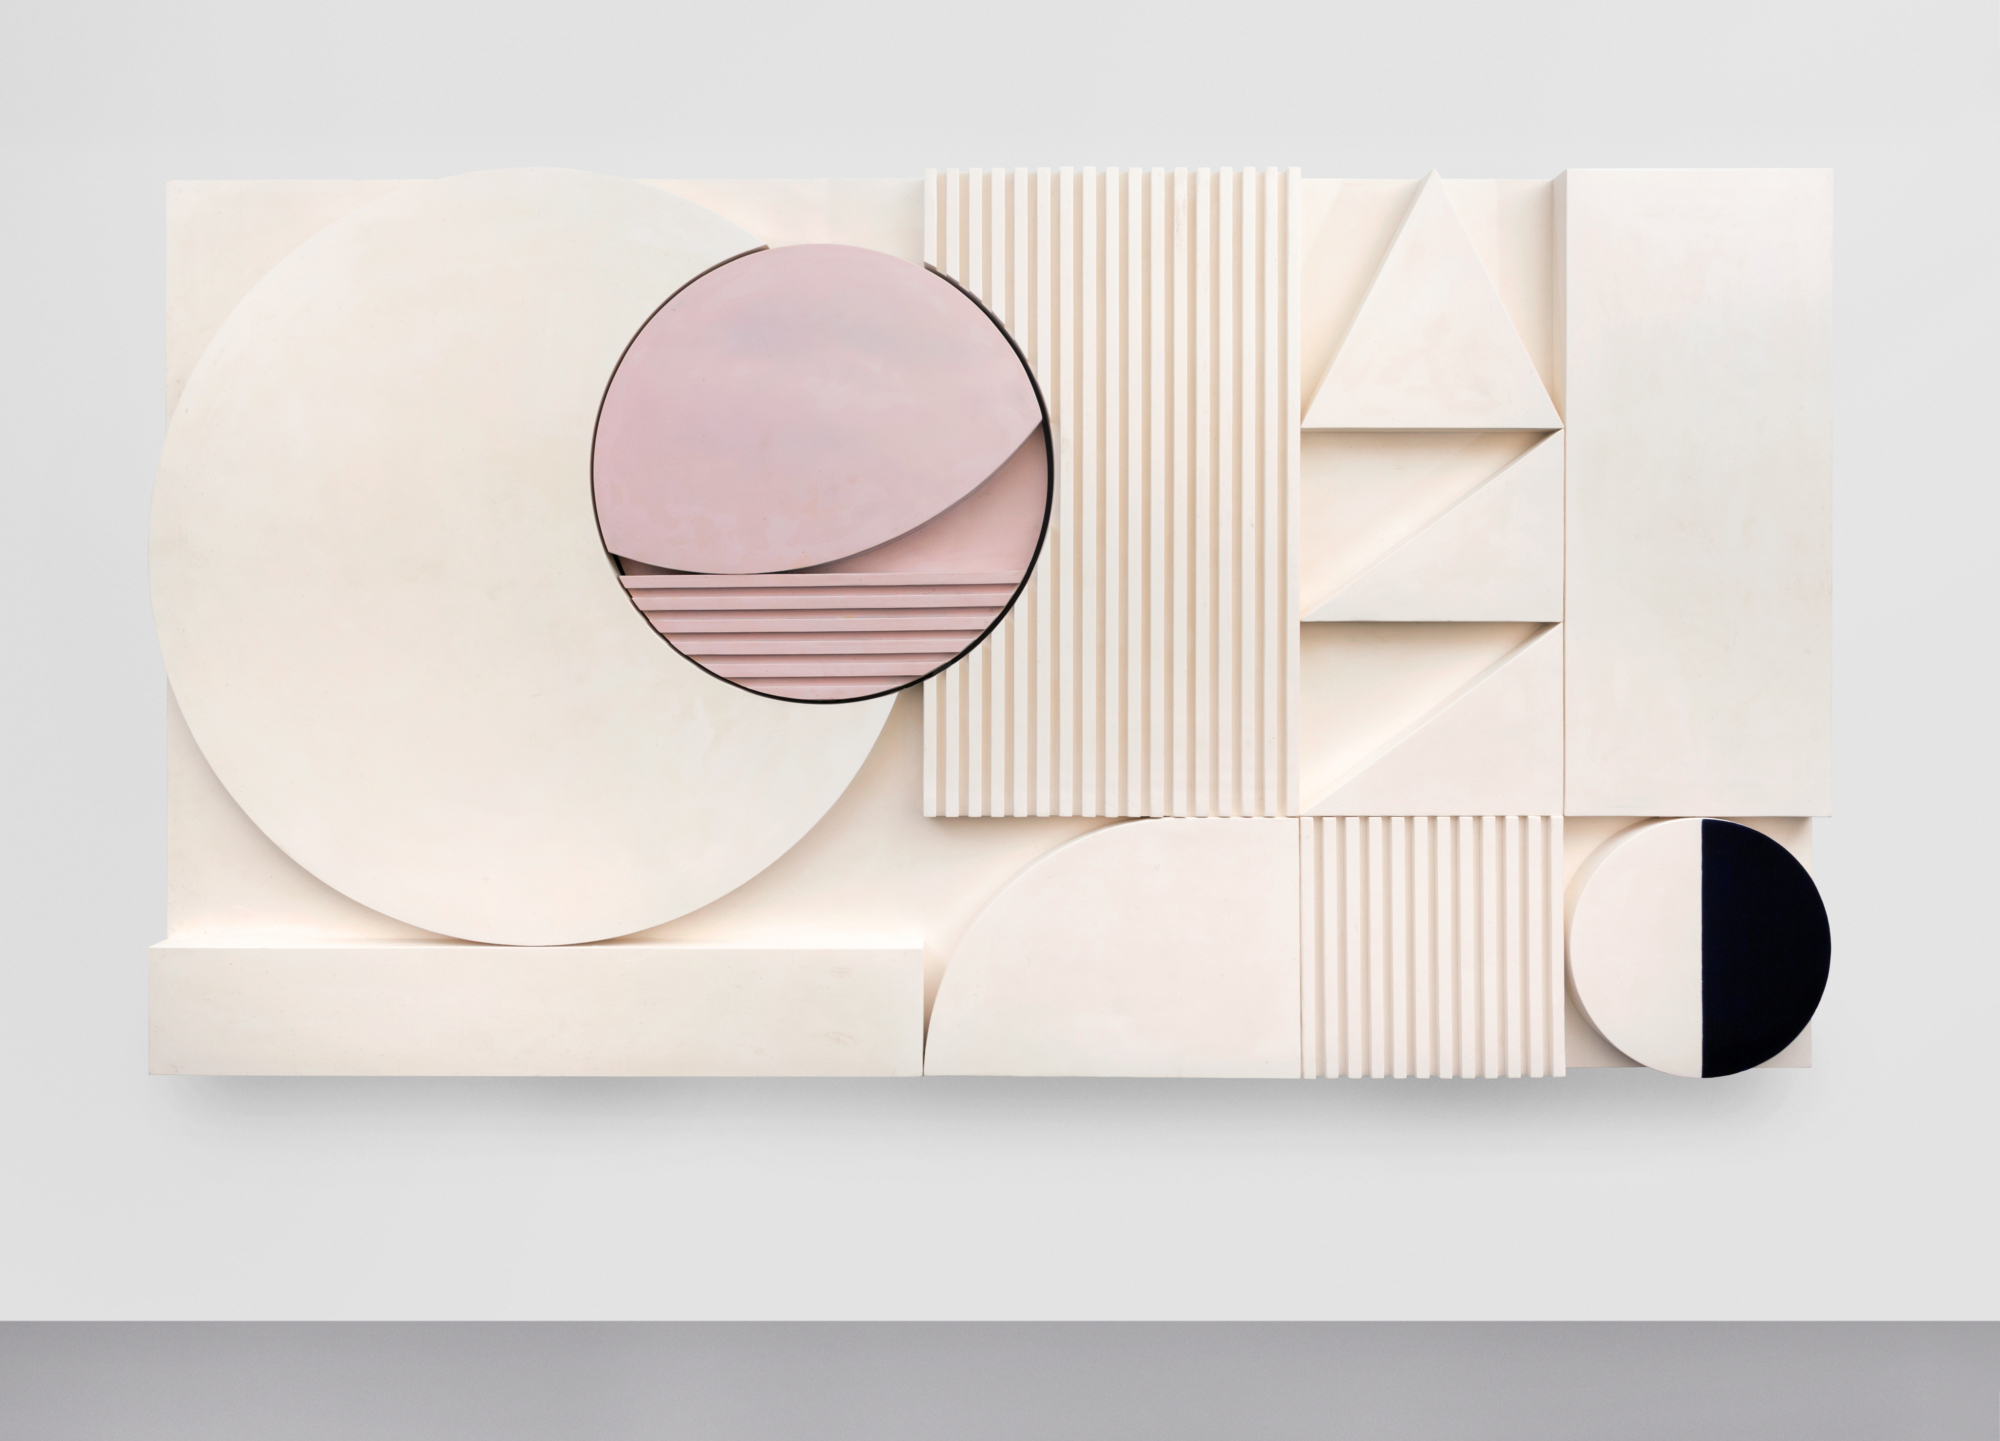 Electric Eclipse by Martine Feipel and Jean Bechameil is a visual sum of strict geometric shapes in immaculate white